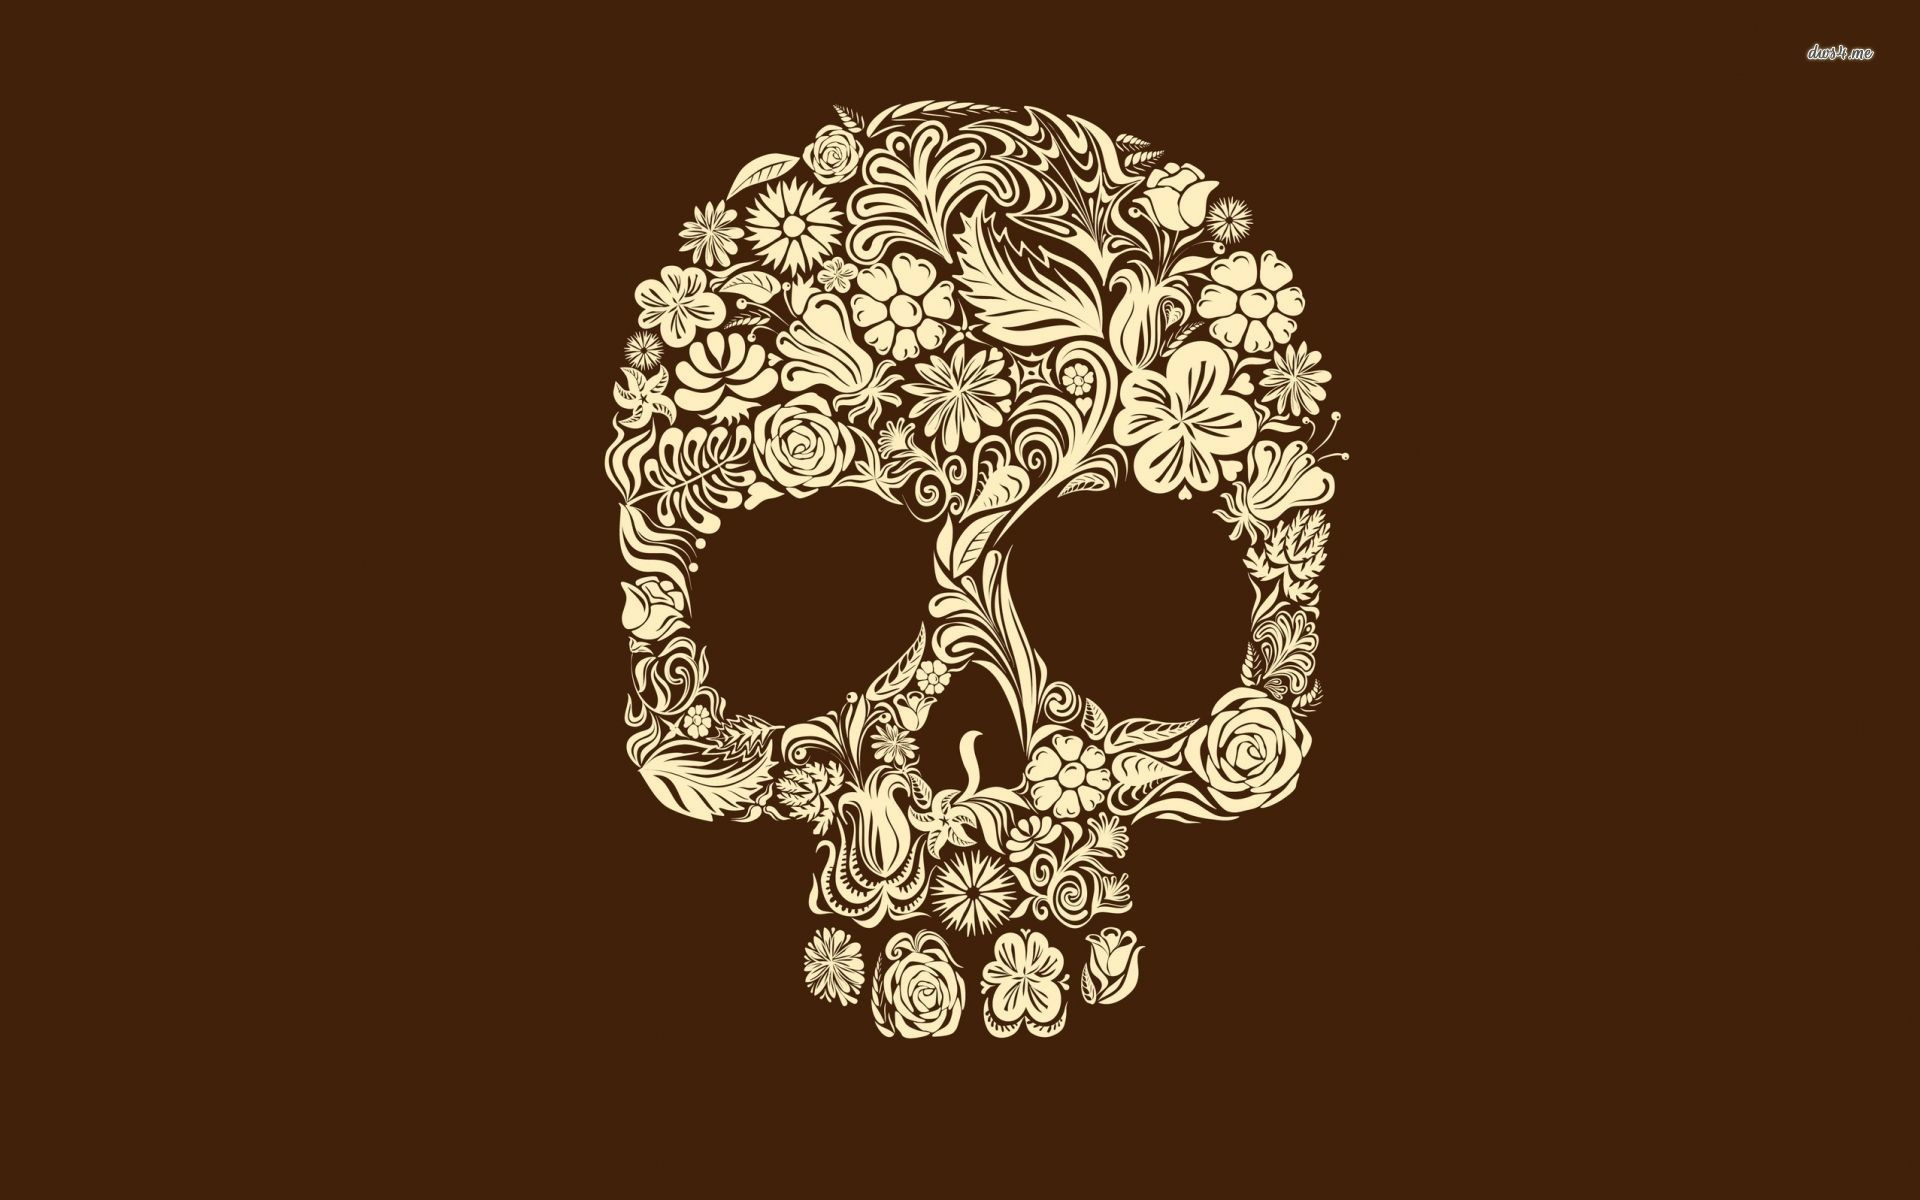 Day of the dead wallpaper 68 images - Sugar skull background ...